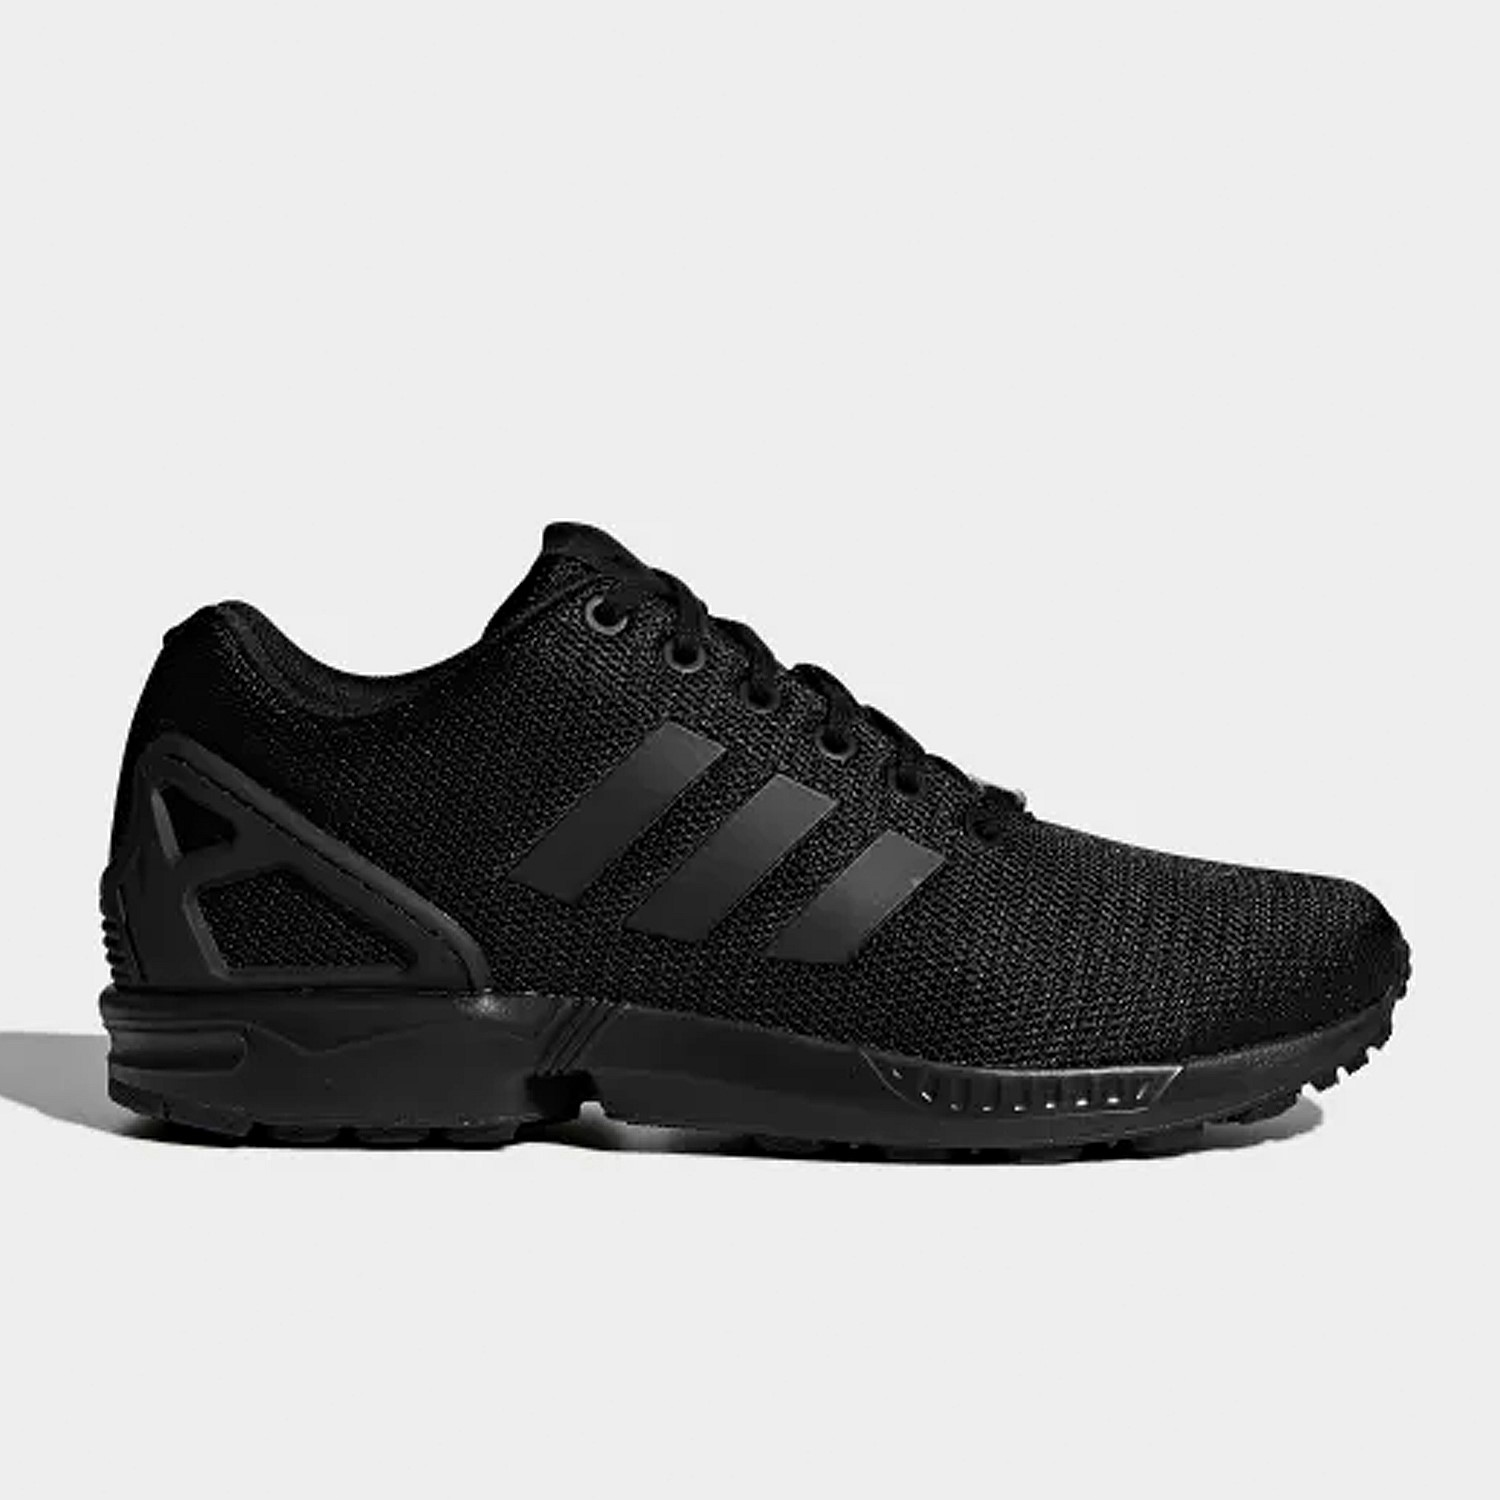 hot sale online 19556 c1657 The possibilities are endless with the modern, minimalist style of the ZX  Flux. This monochrome version of the streamlined shoes is built in sport  mesh with ...